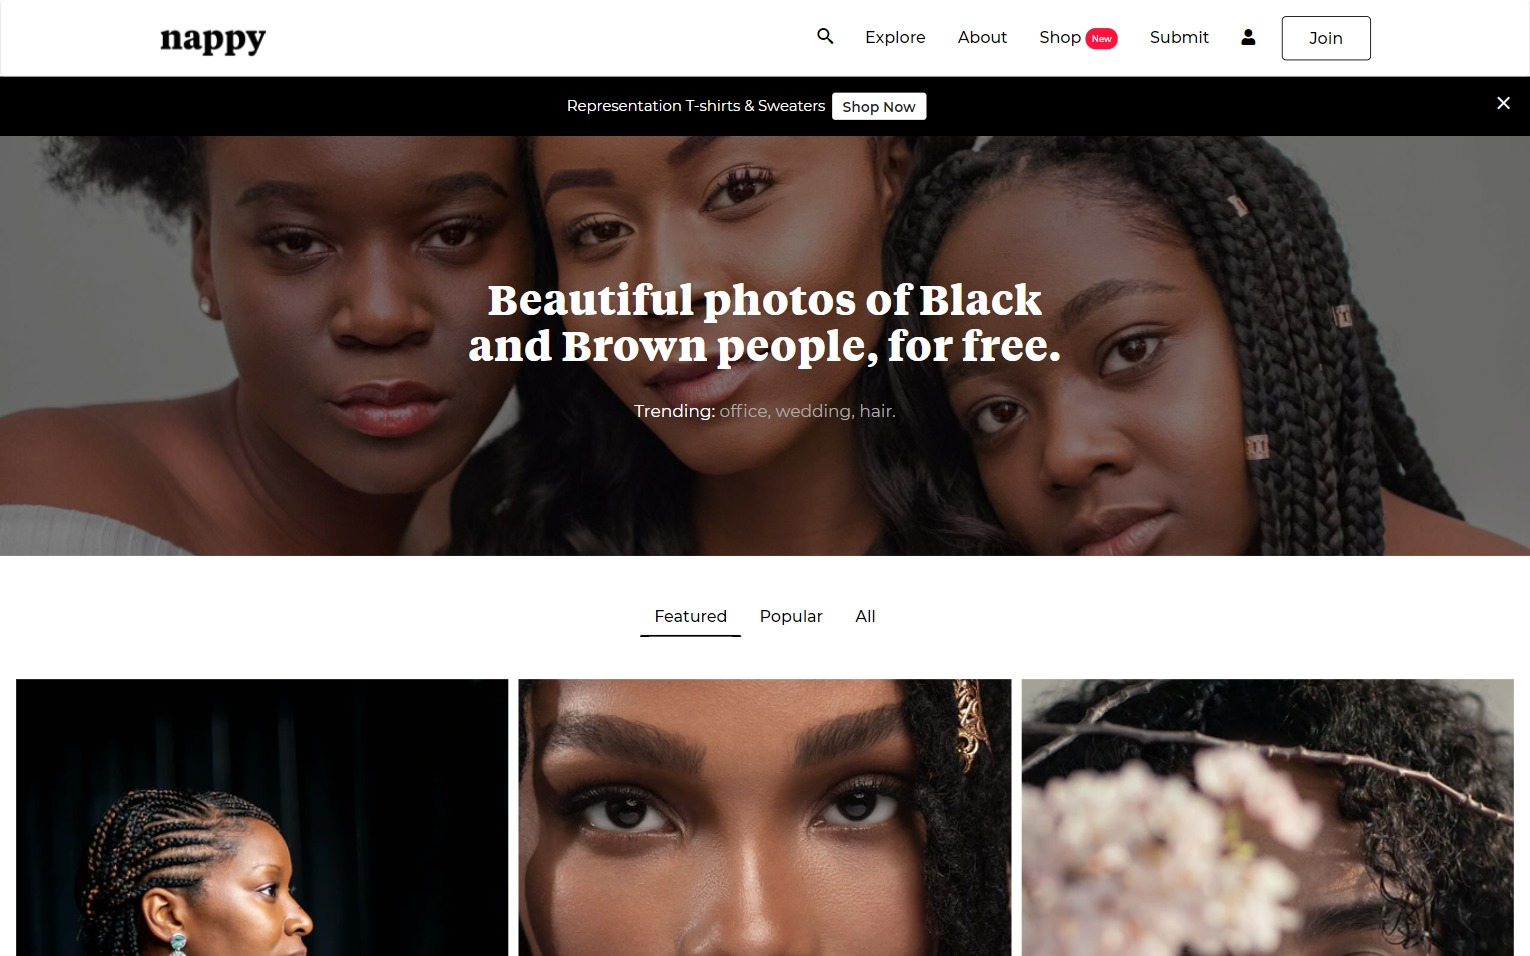 Nappy stock photos homepage with 3 beautiful POC women